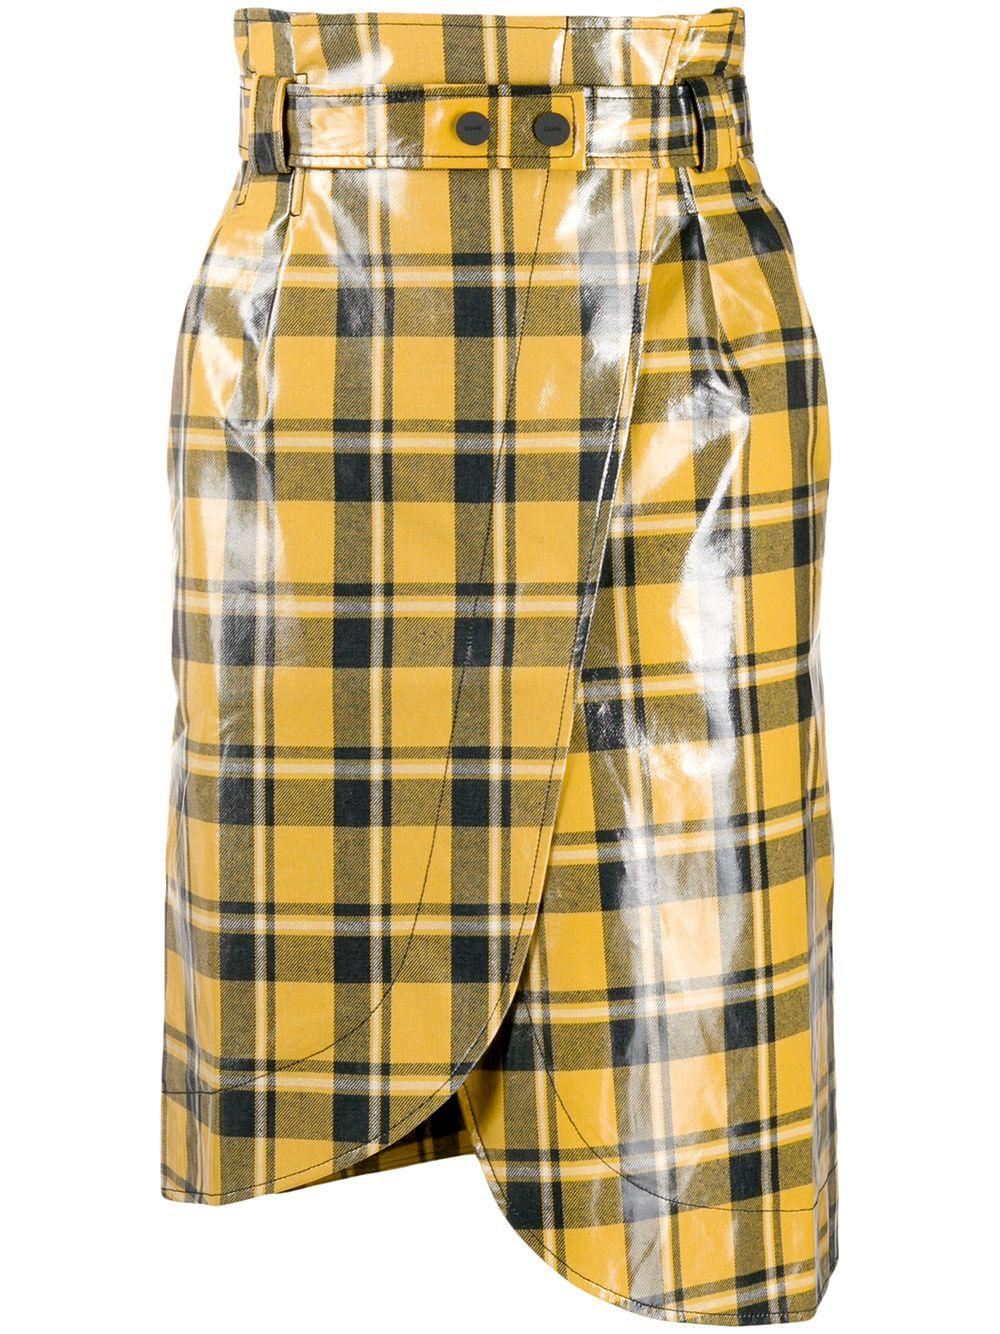 Coated Twill Plaid Midi Skirt